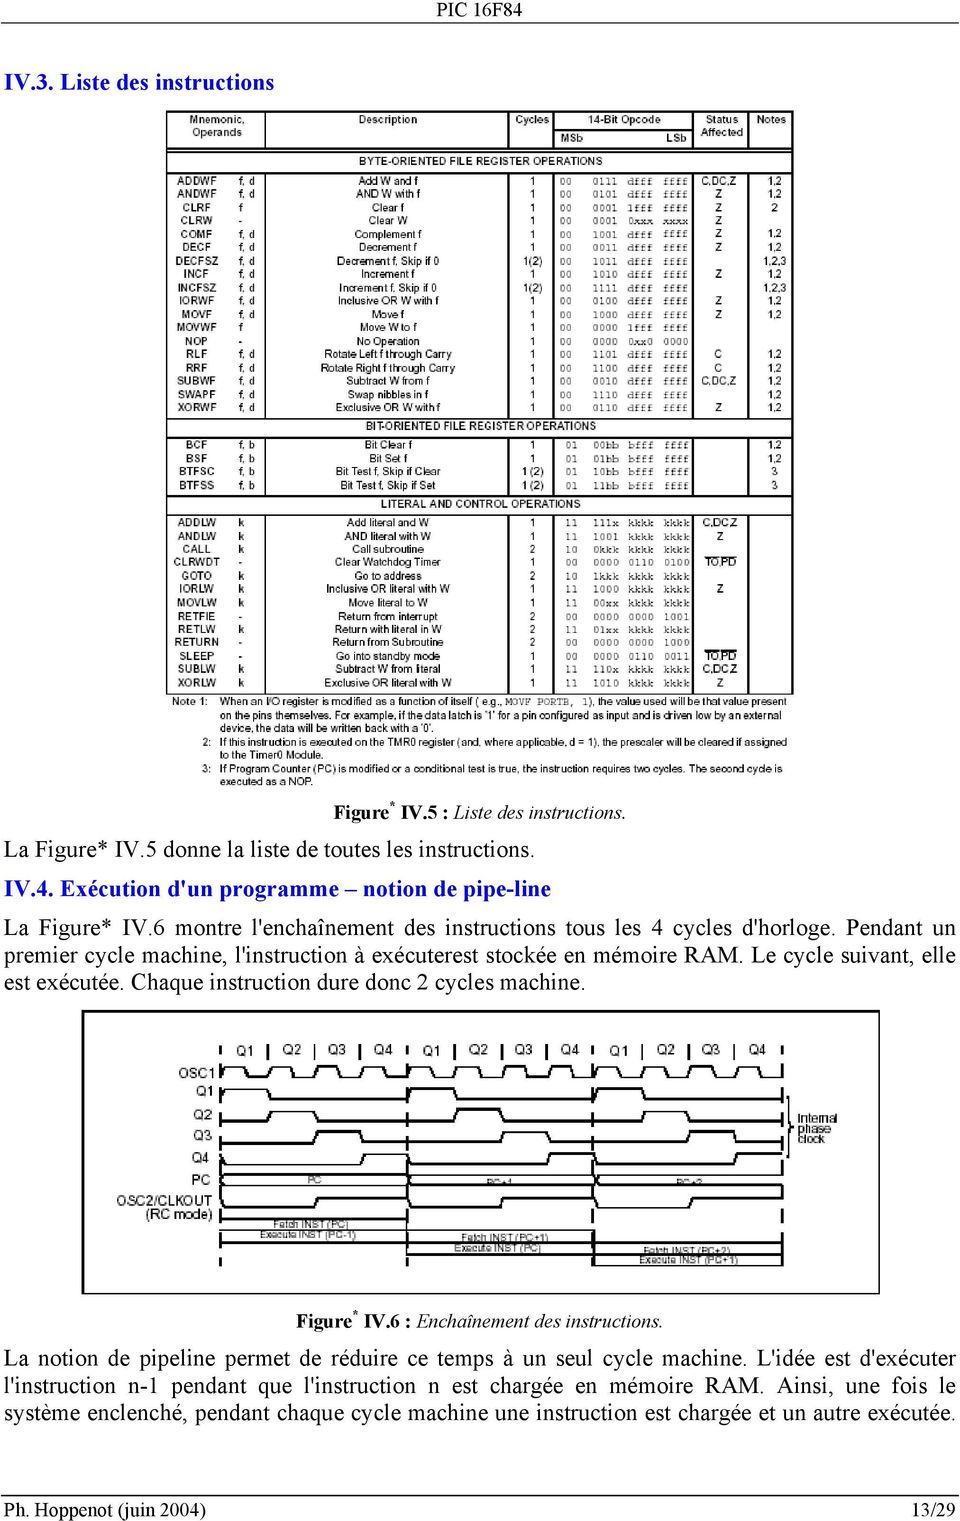 Chaque instruction dure donc 2 cycles machine. Figure * IV.6 : Enchaînement des instructions. La notion de pipeline permet de réduire ce temps à un seul cycle machine.